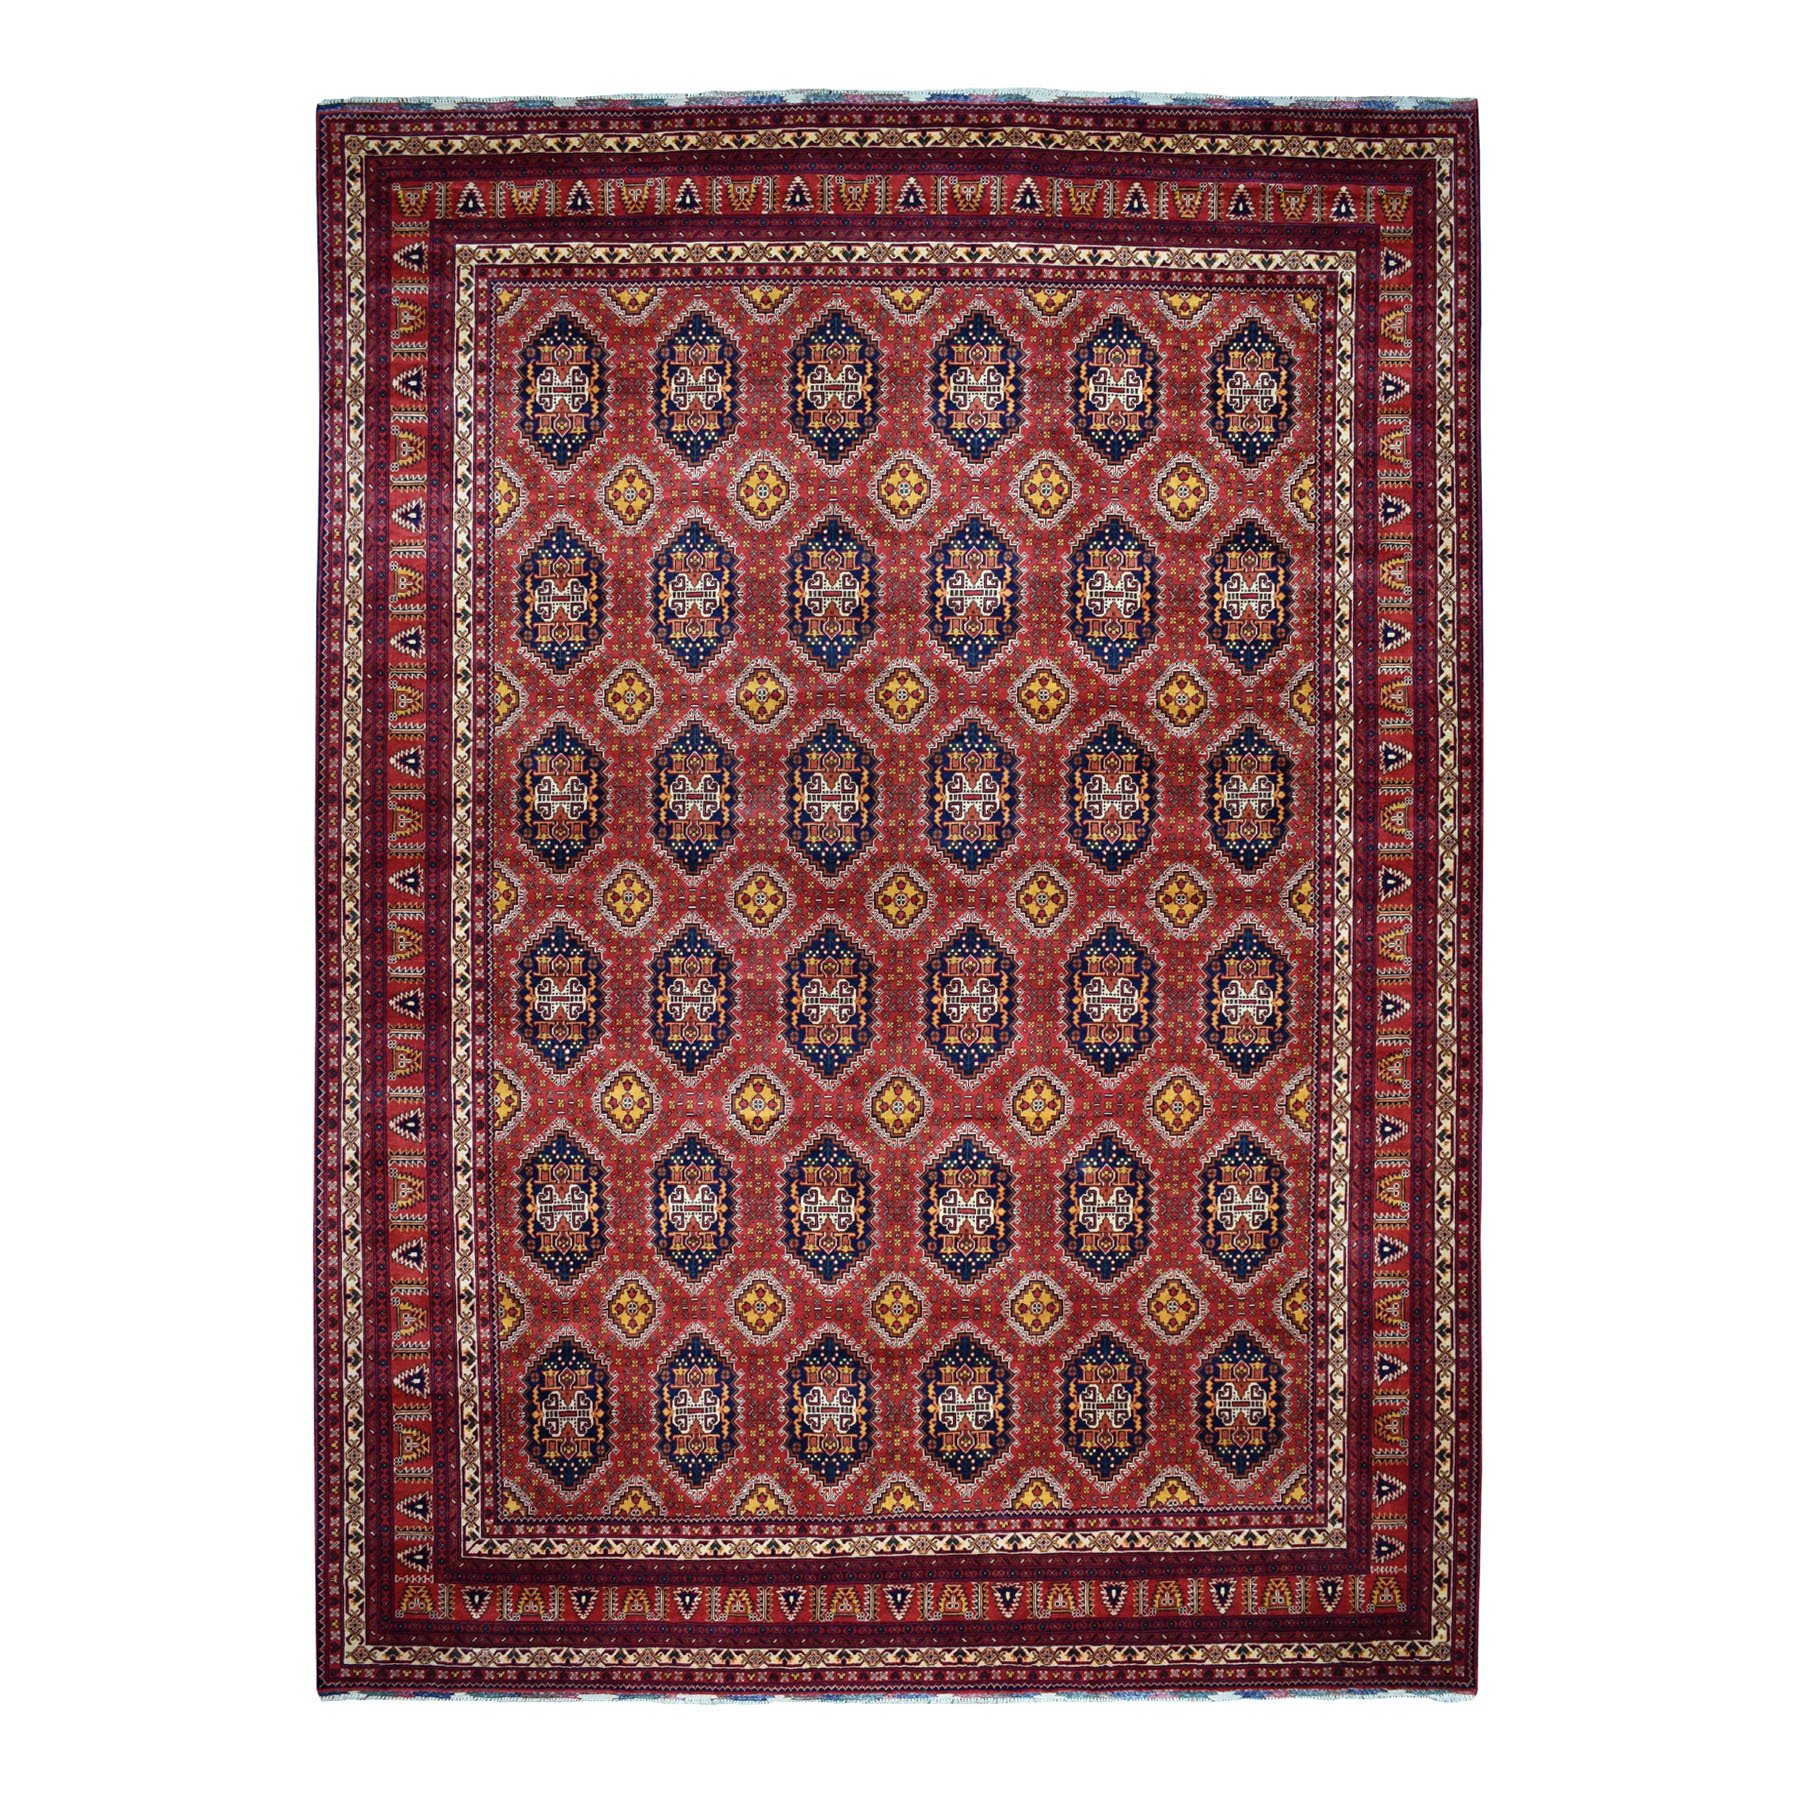 """10'1""""X12'5"""" Repetitive Design Pure Wool Afghan Khamyab Hand-Knotted Oriental Rug moaeaa76"""